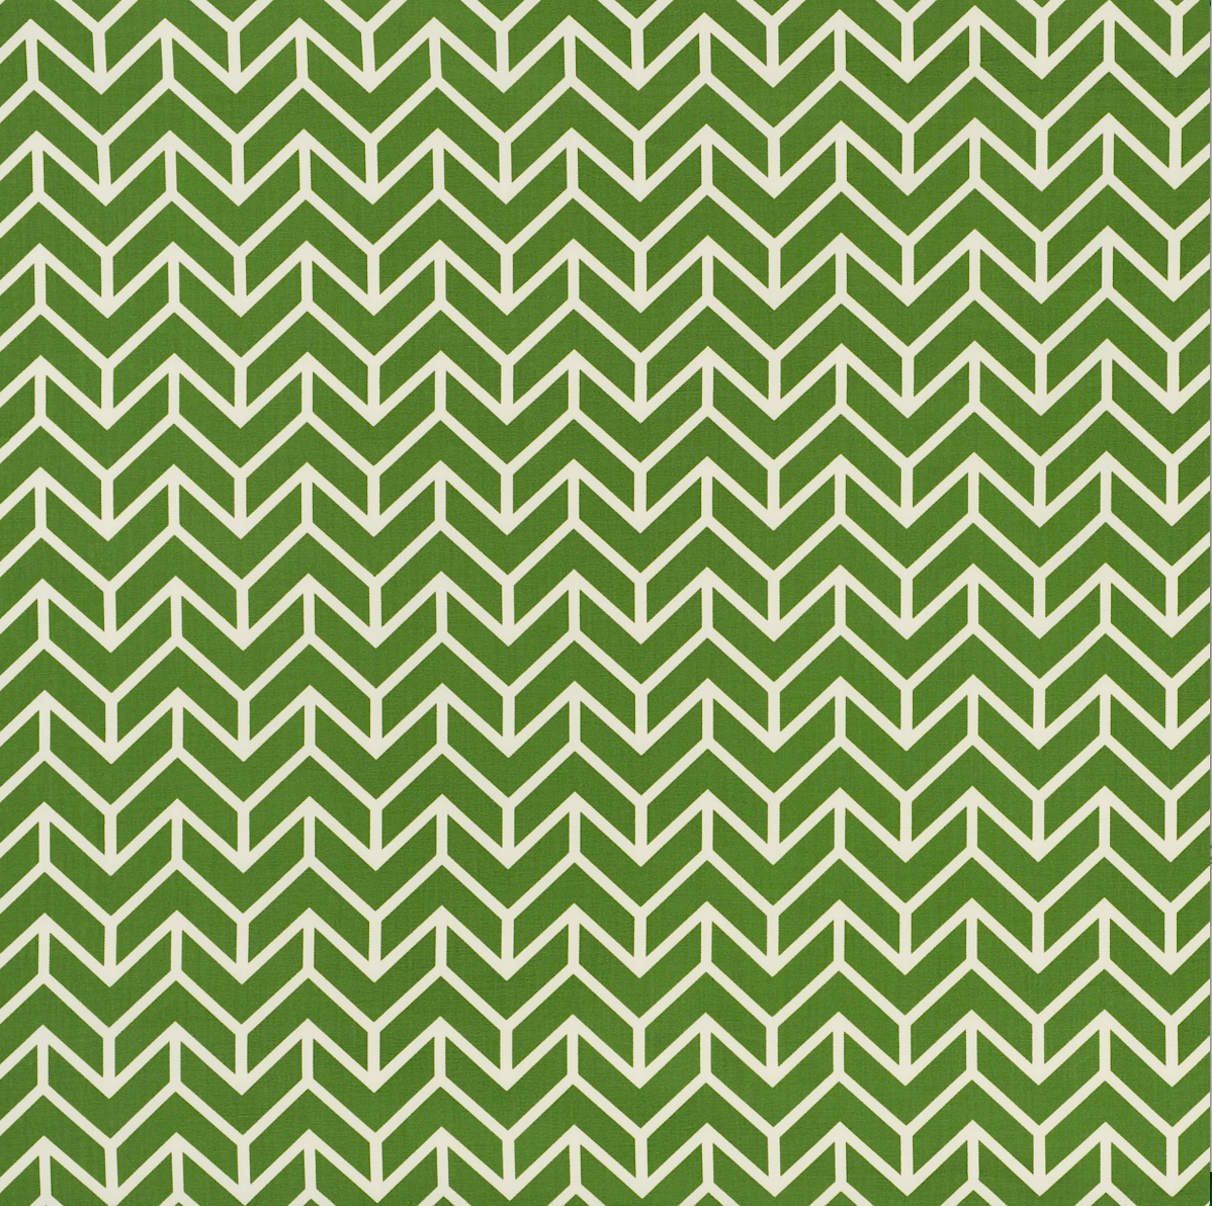 Chevron Indoor/ Outdoor Fabric - Urban American Dry Goods Co.